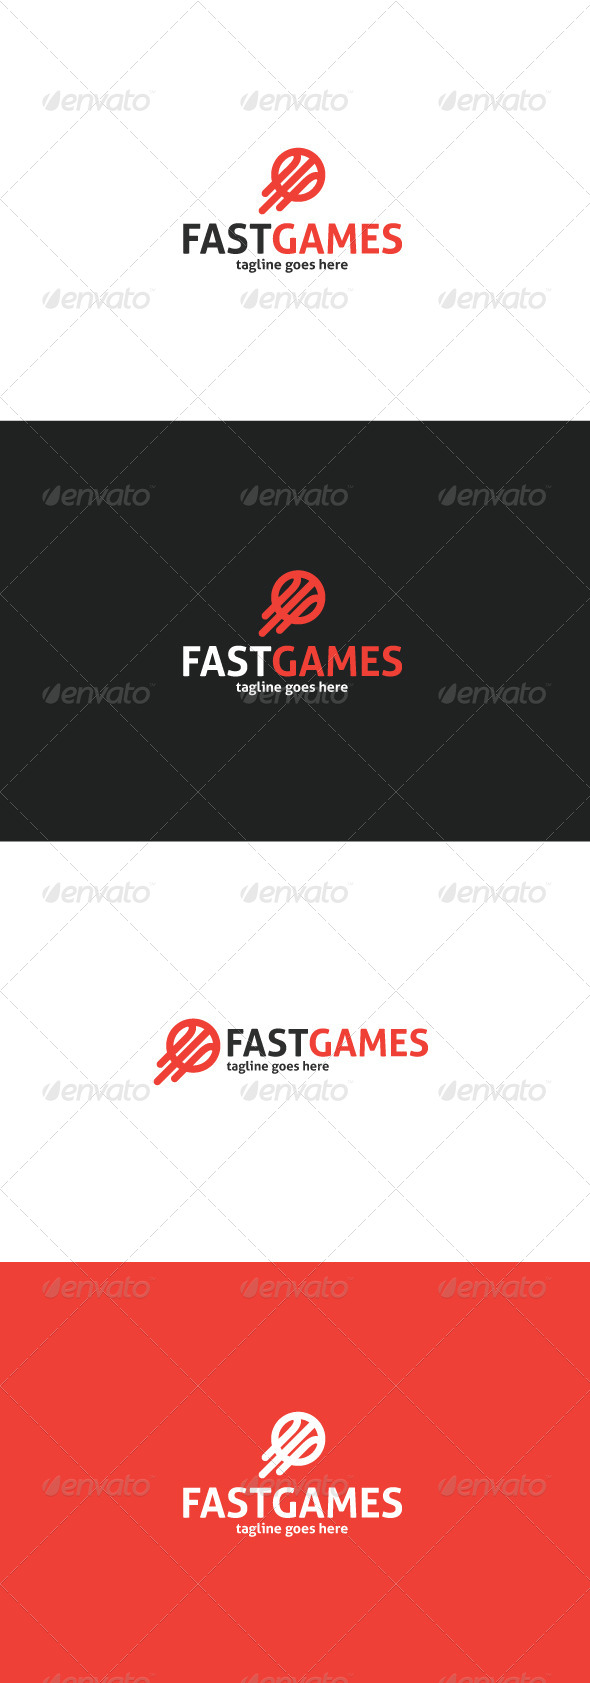 GraphicRiver Fast Games Logo 8498293